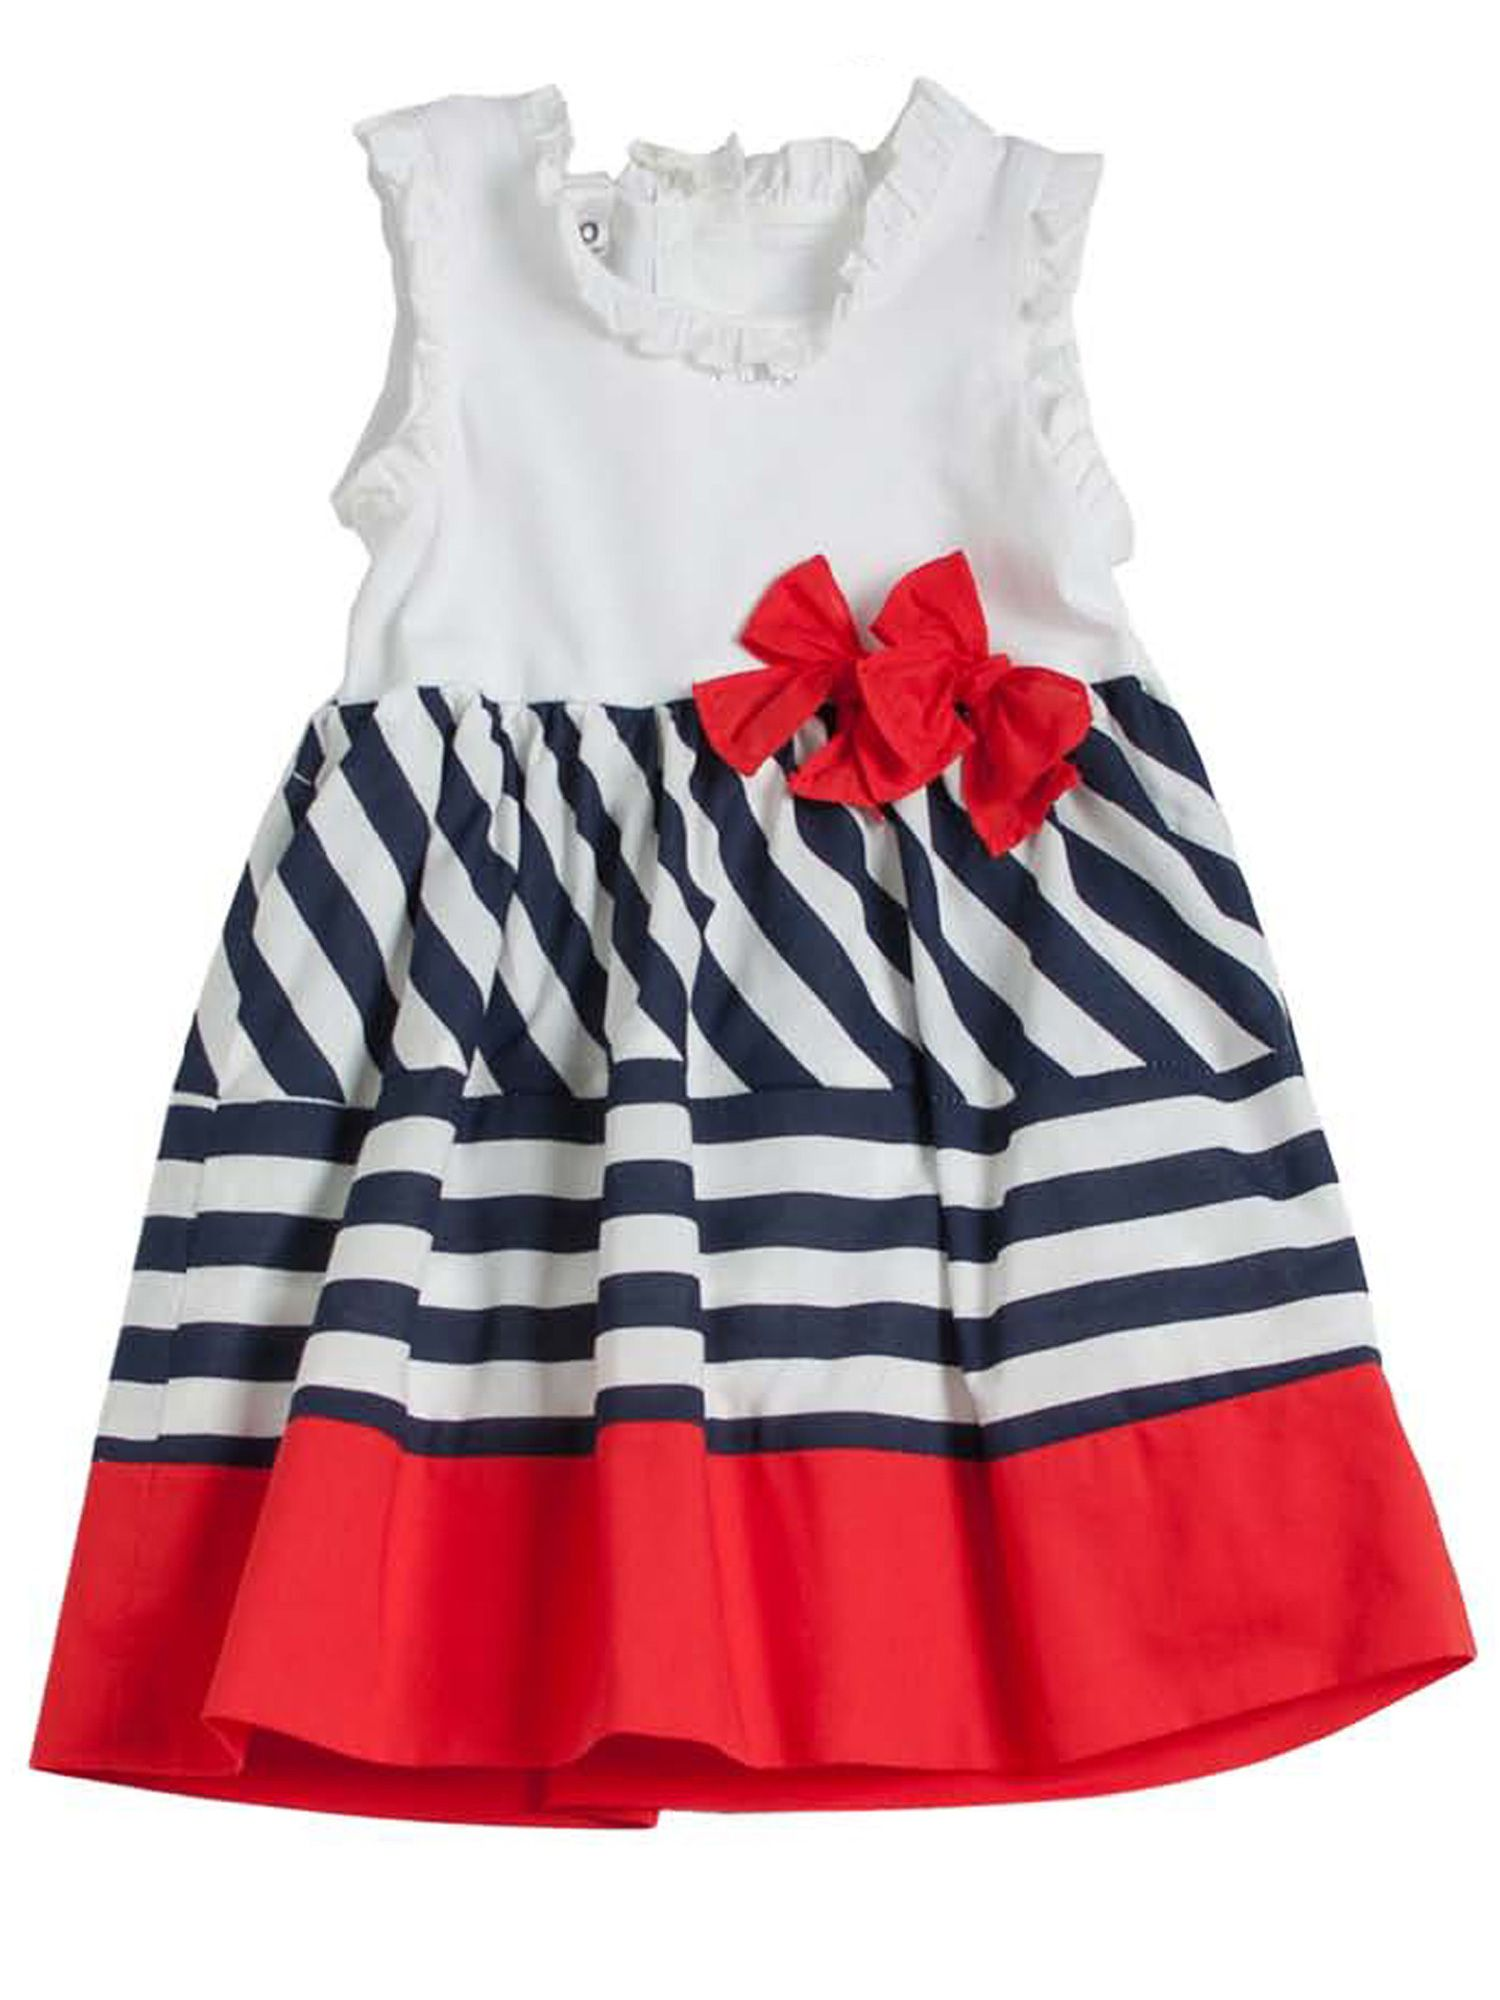 Girls blue red and white striped dress